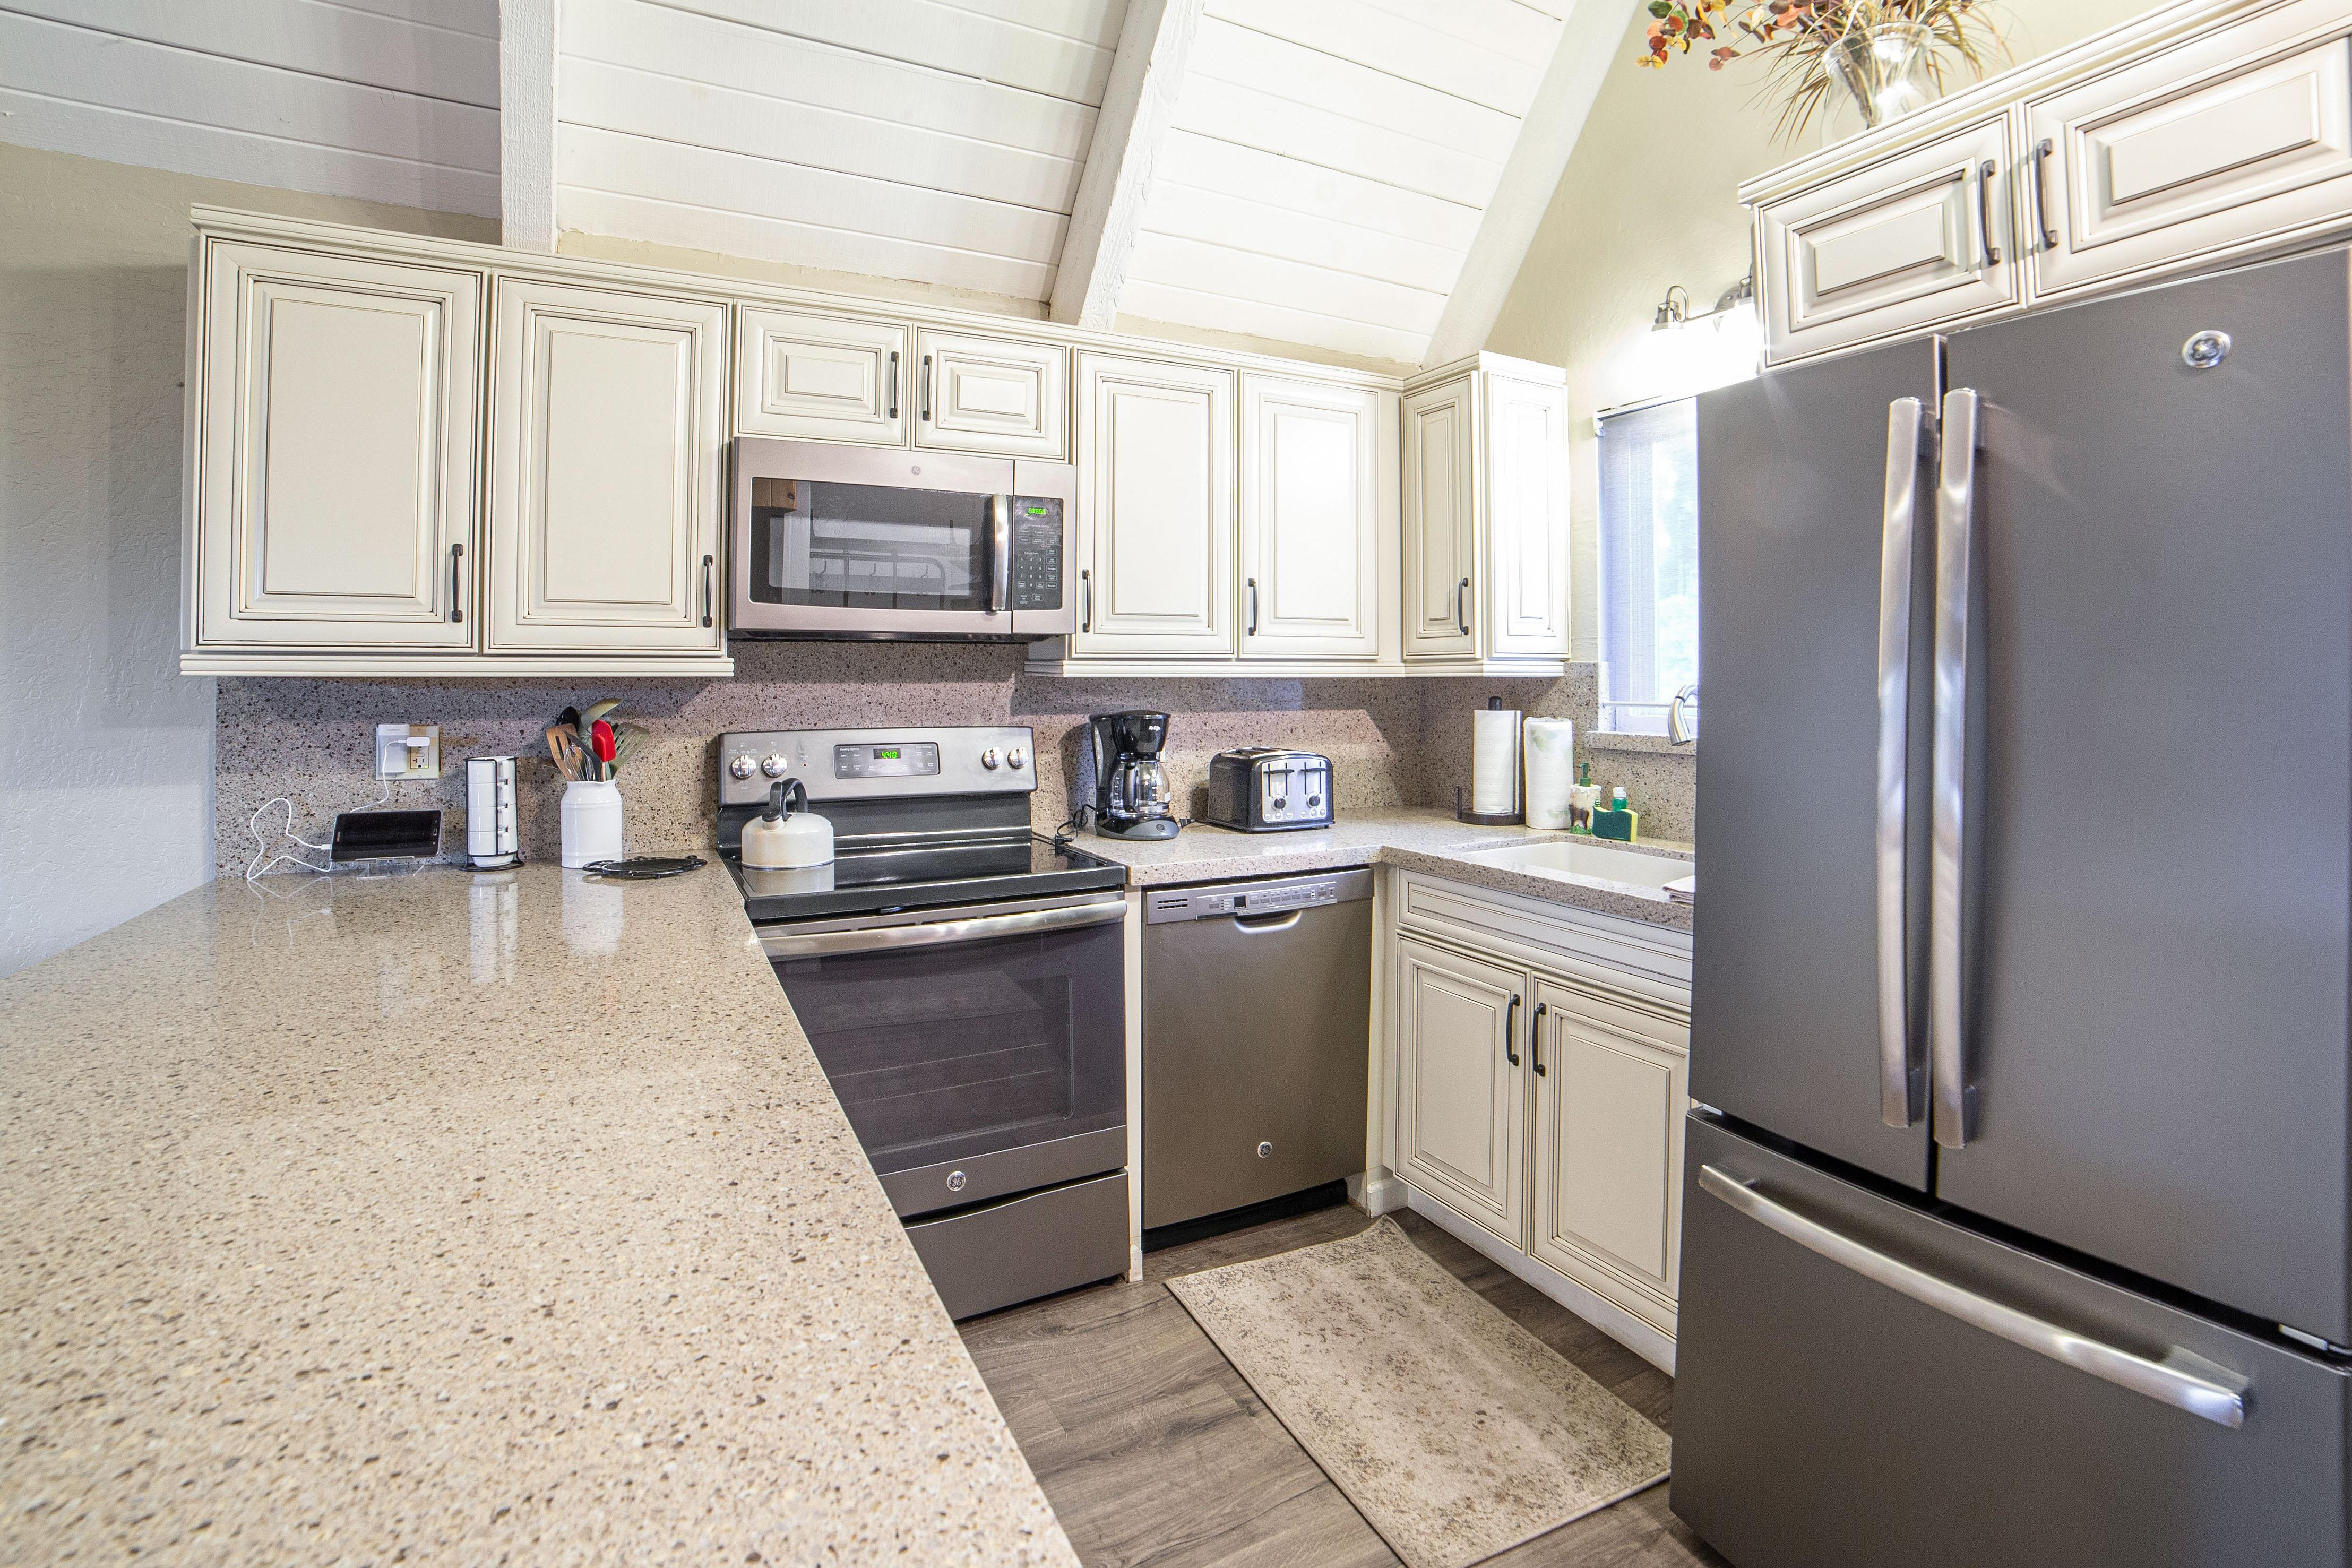 Stainless steel appliances shine in the remodeled gourmet kitchen.